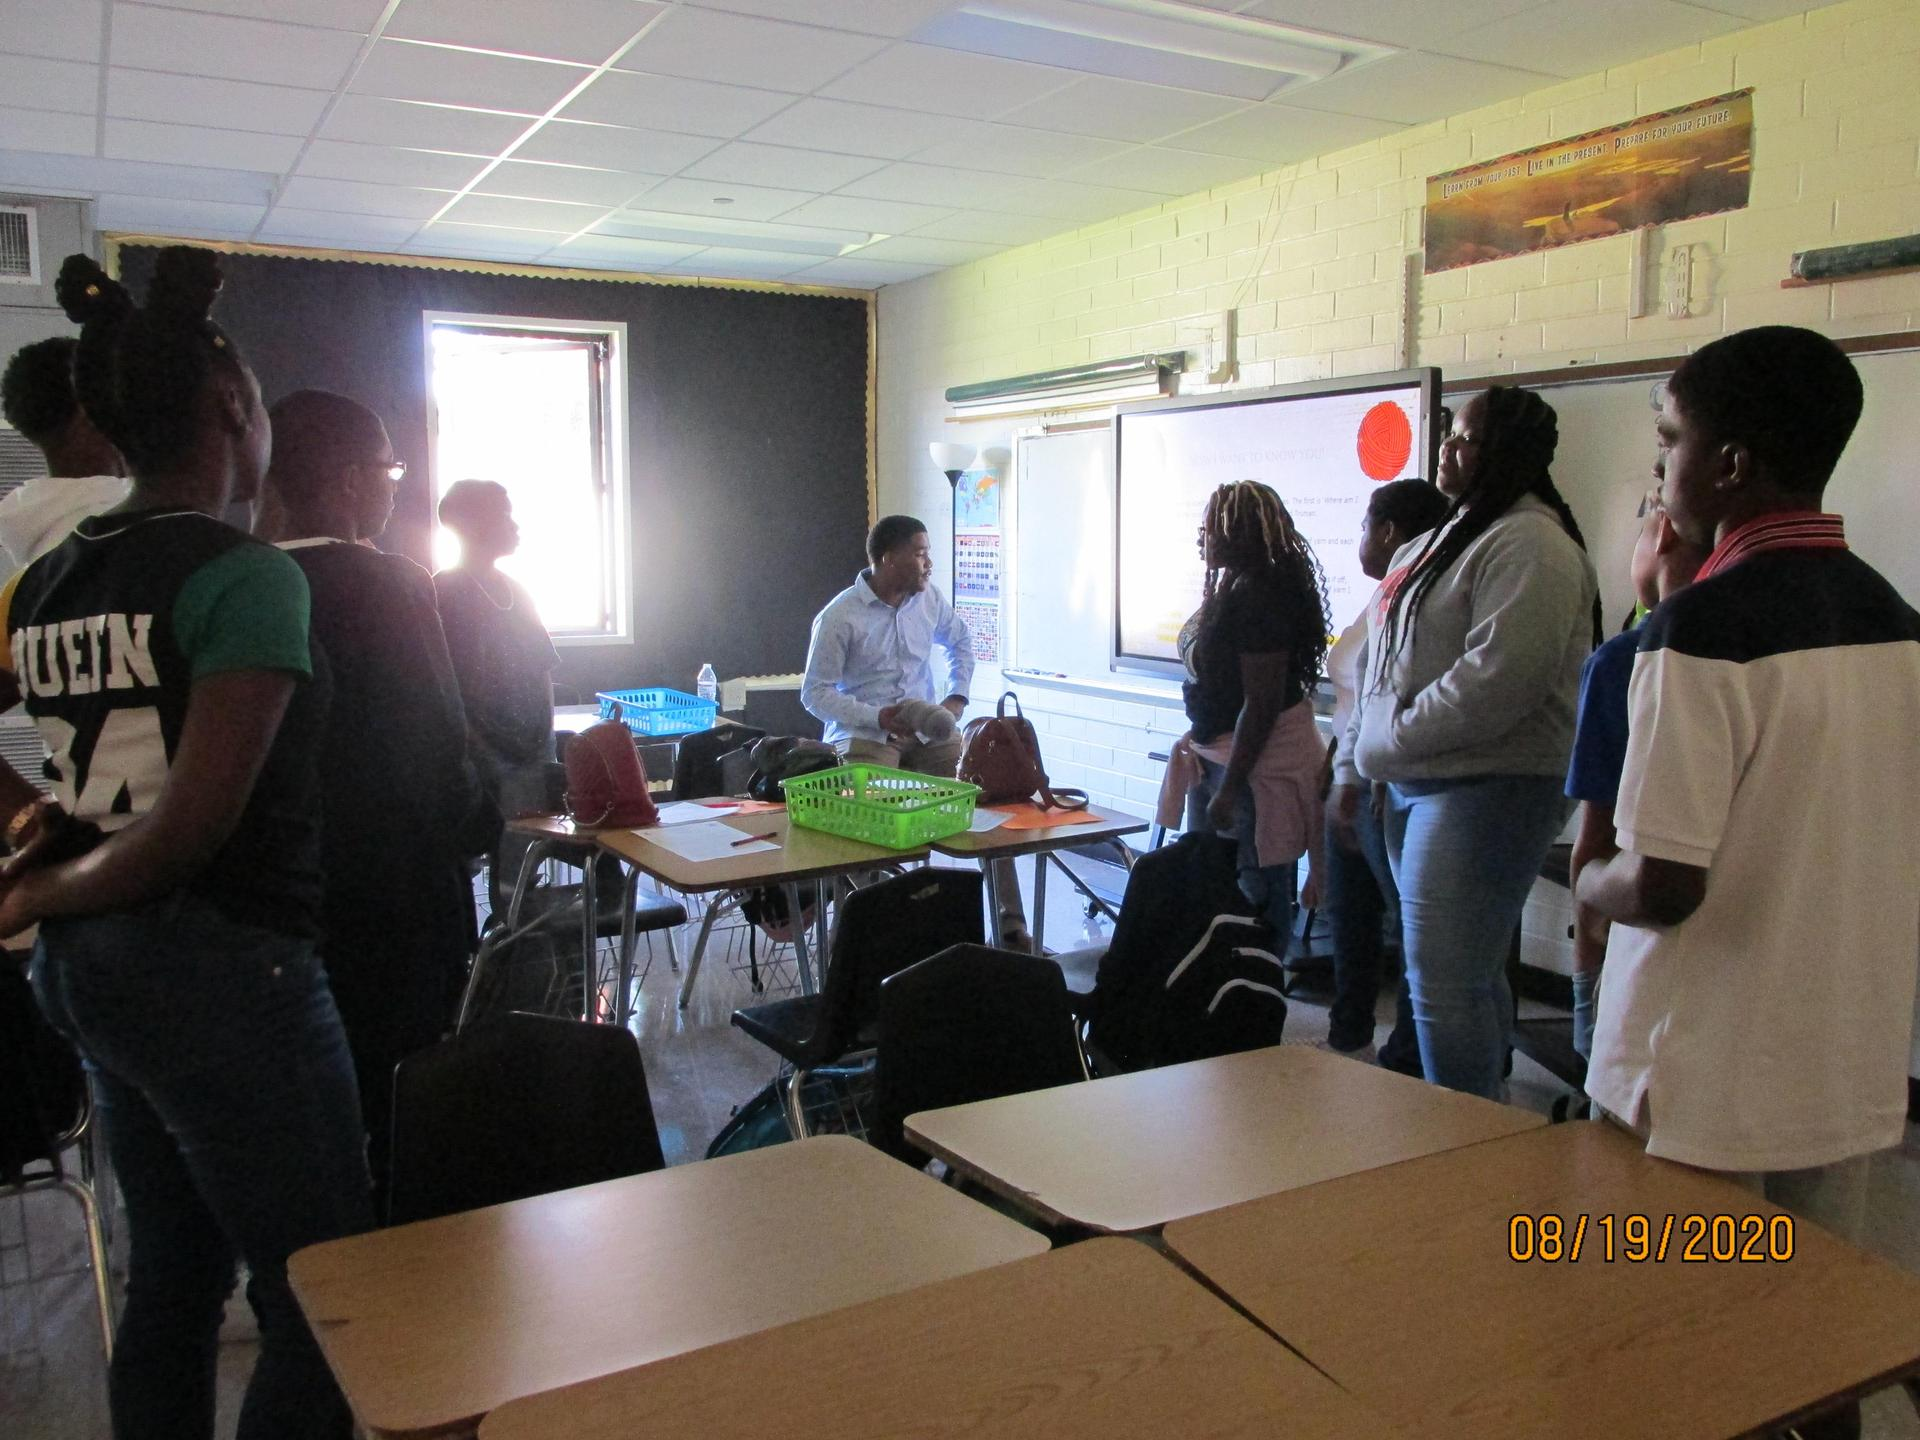 Students in the classroom with the teacher